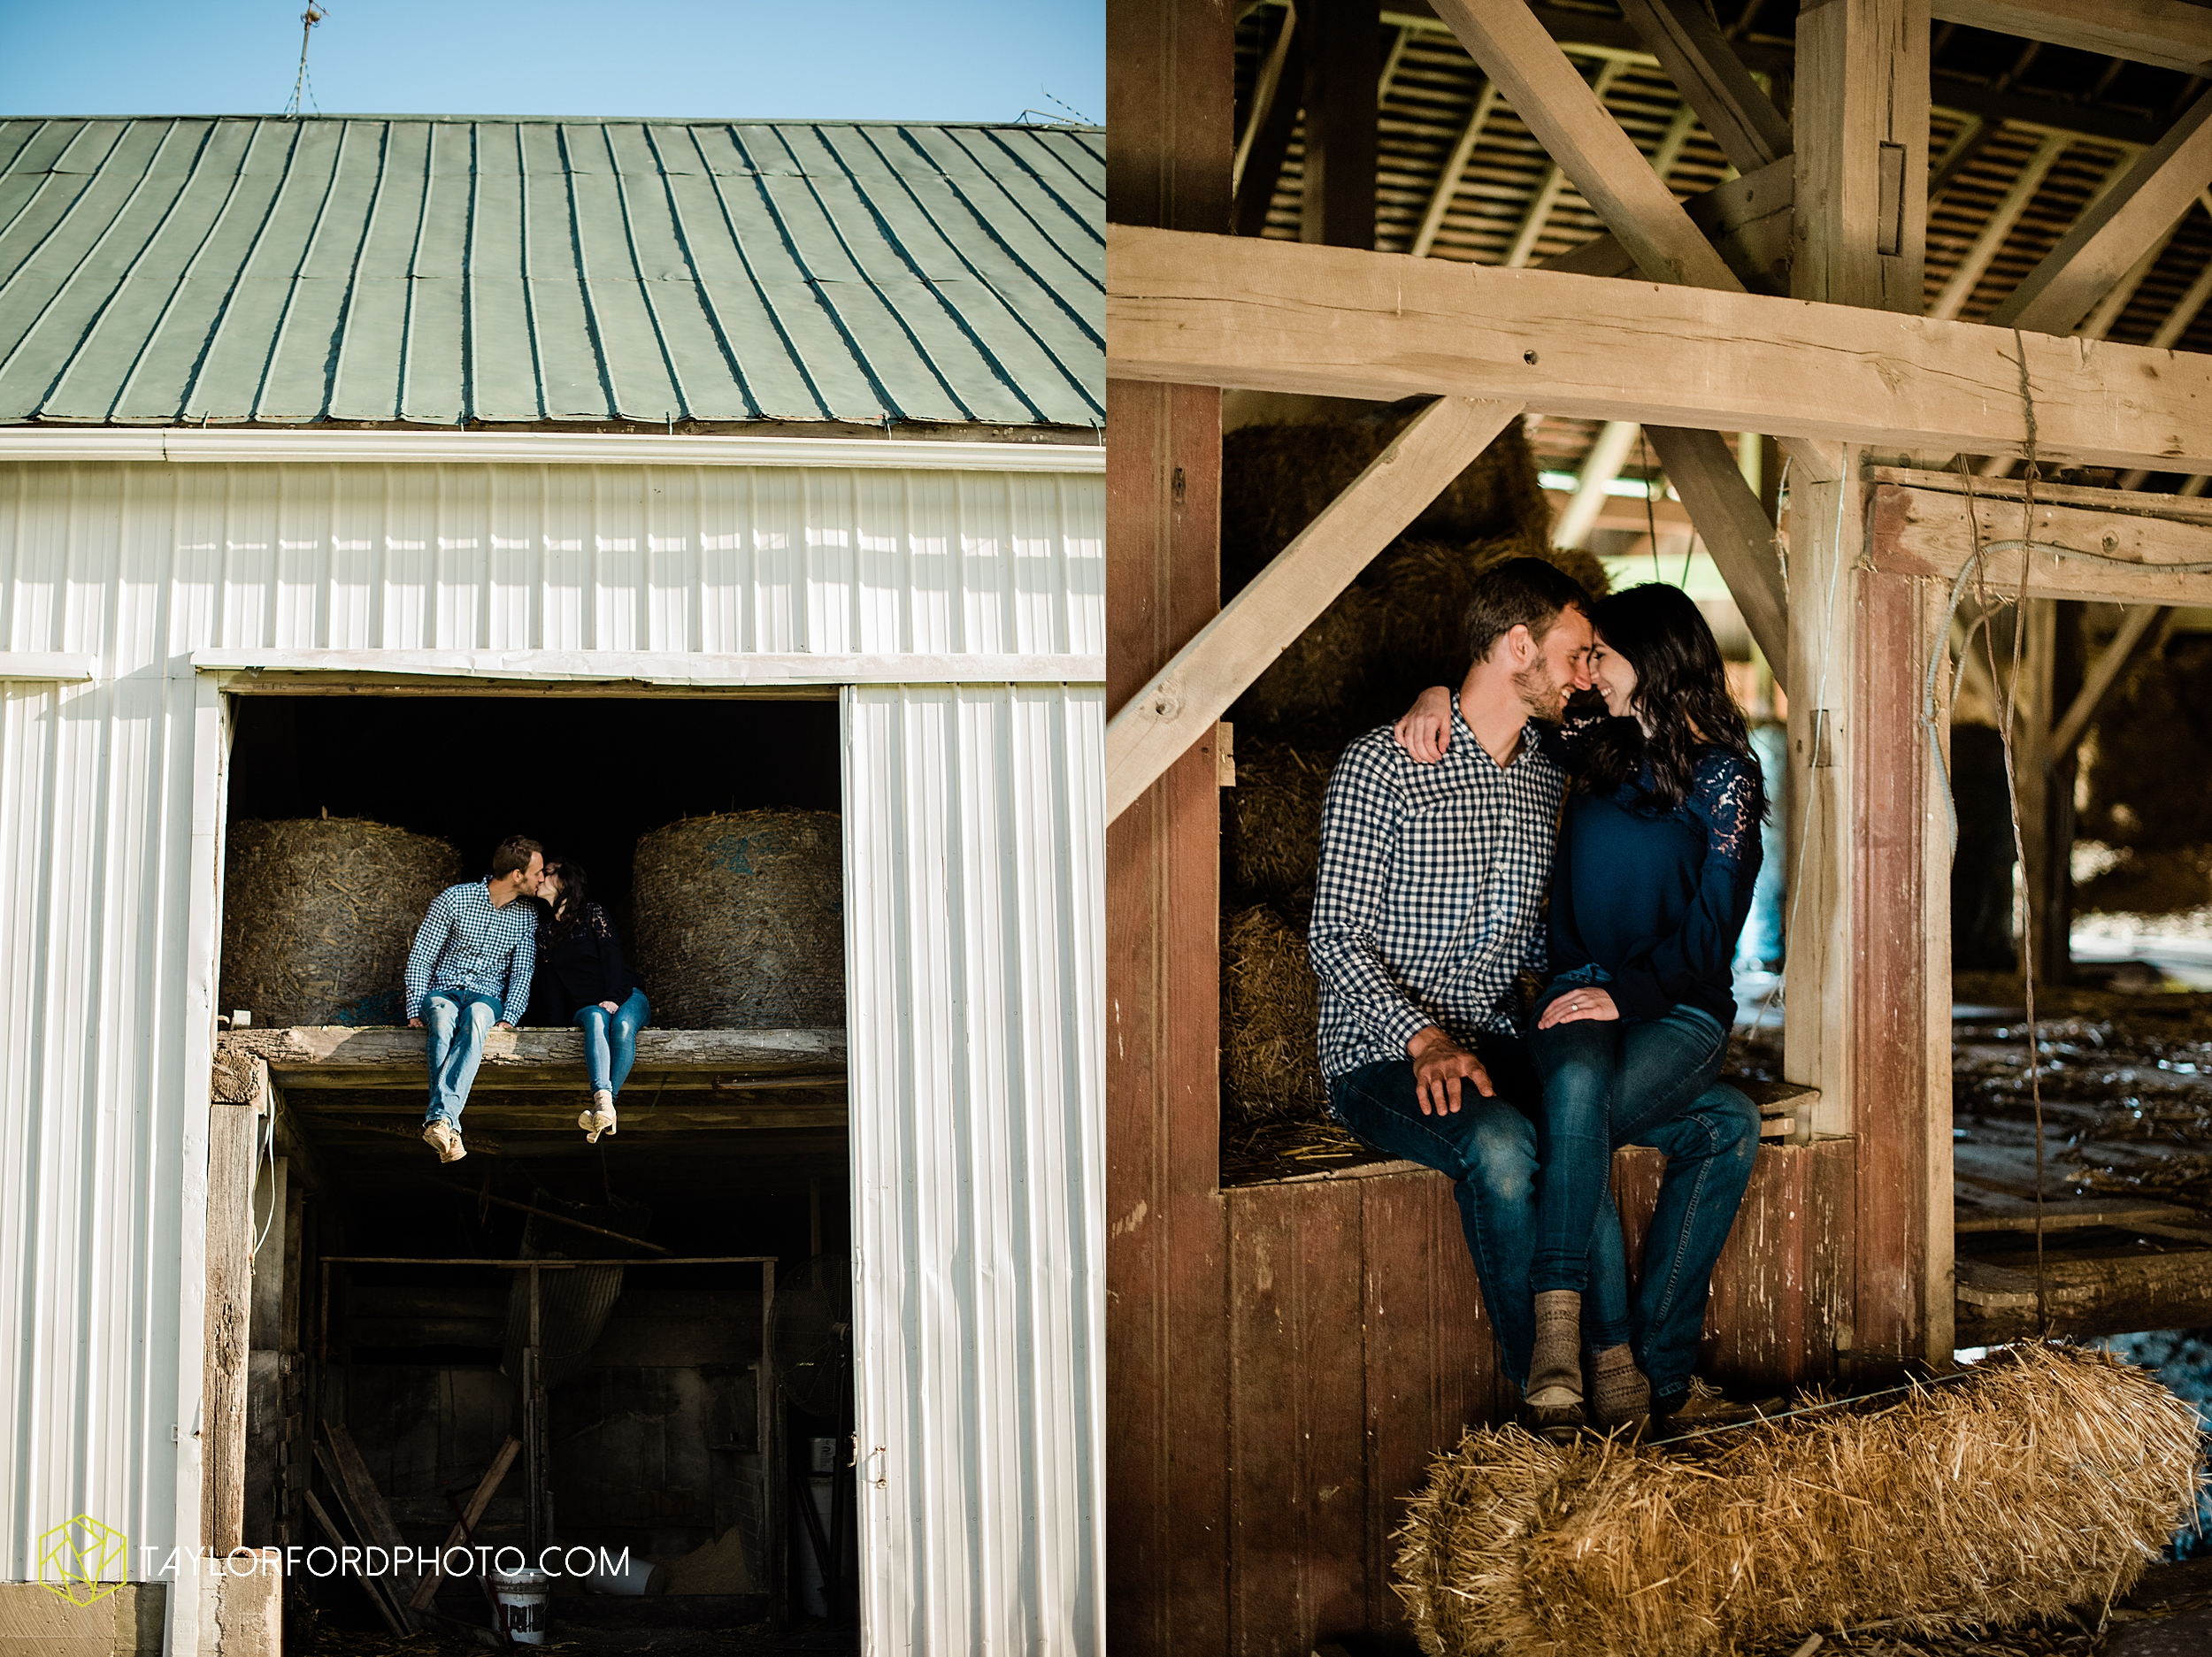 celina-mercer-county-ohio-farm-woods-engagement-photographer-photography-taylor-ford-hirschy-photographer_2997.jpg